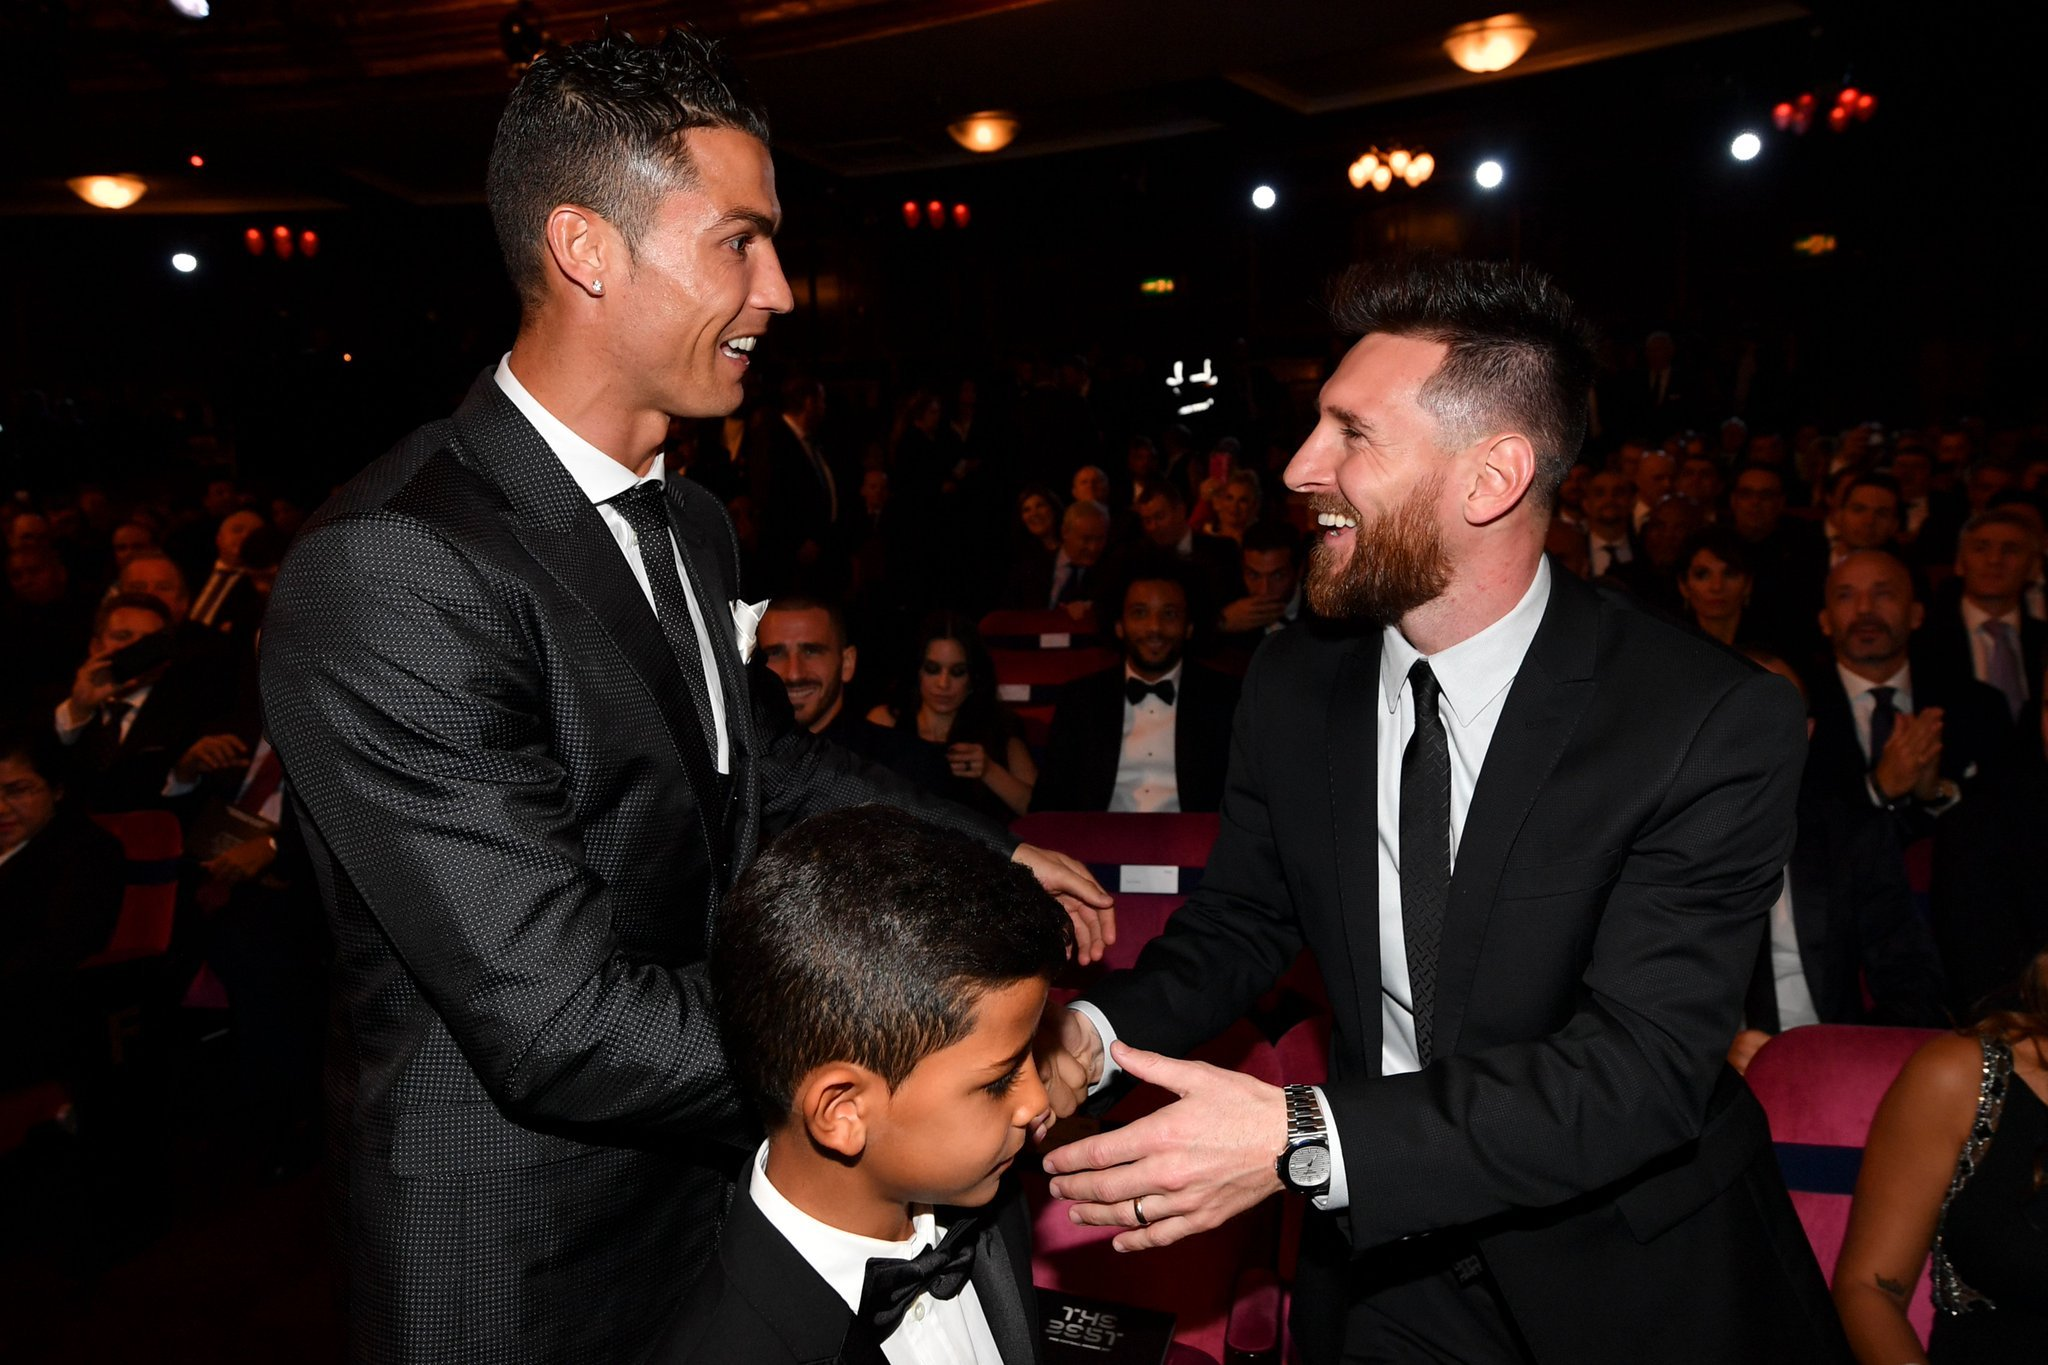 My rivalry with Messi still far from over – Ronaldo